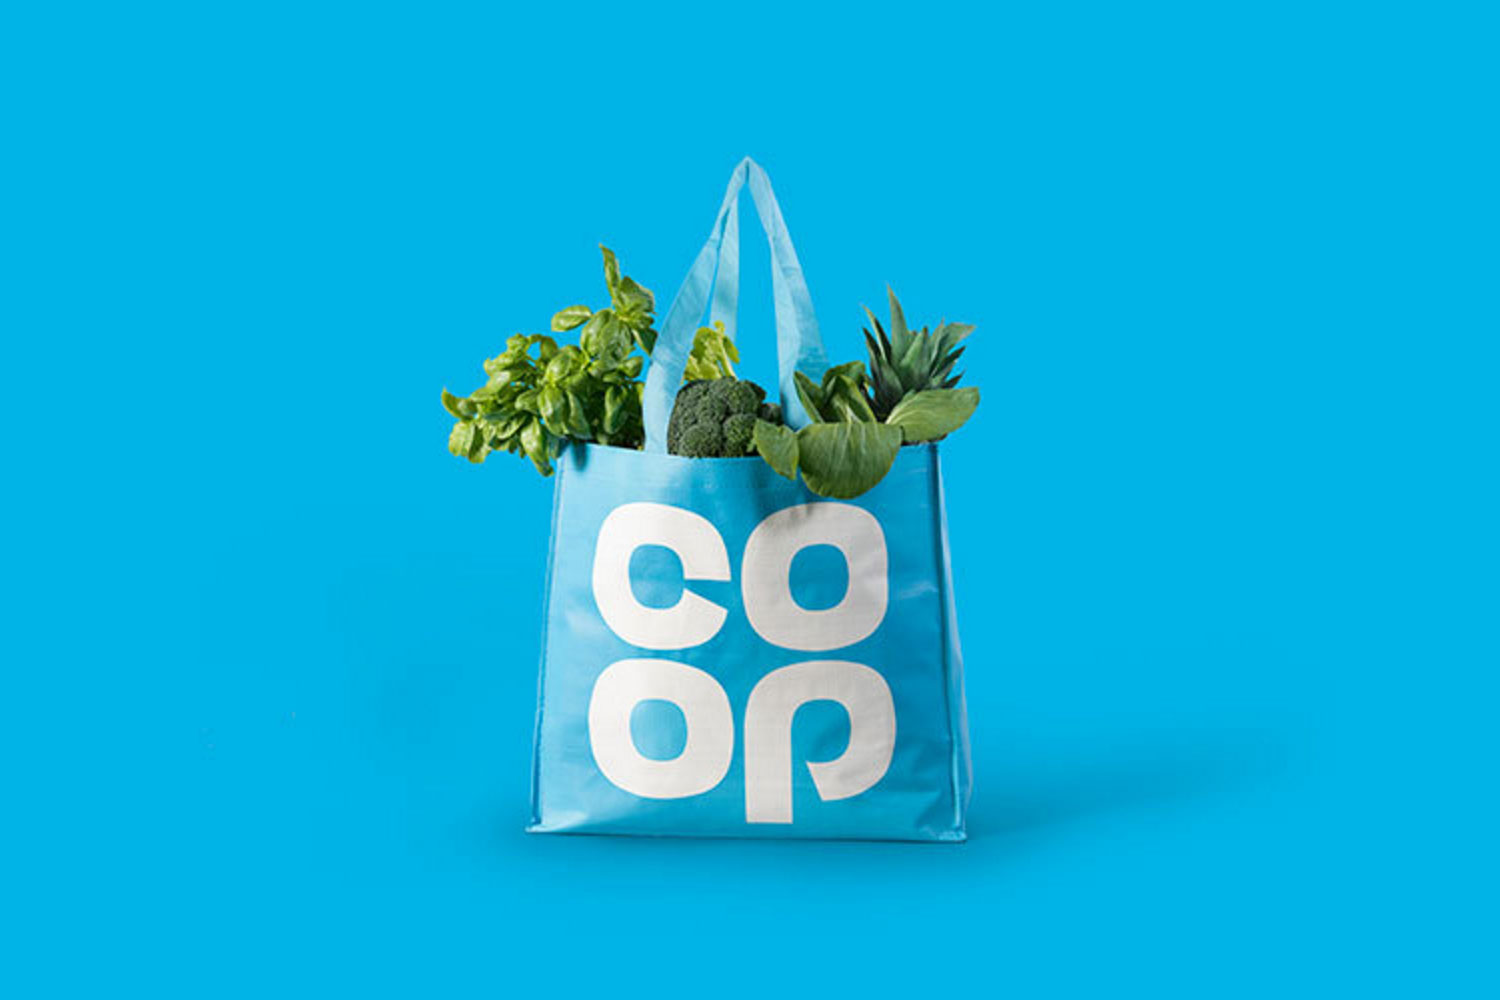 New-look for the Co-op designed by North